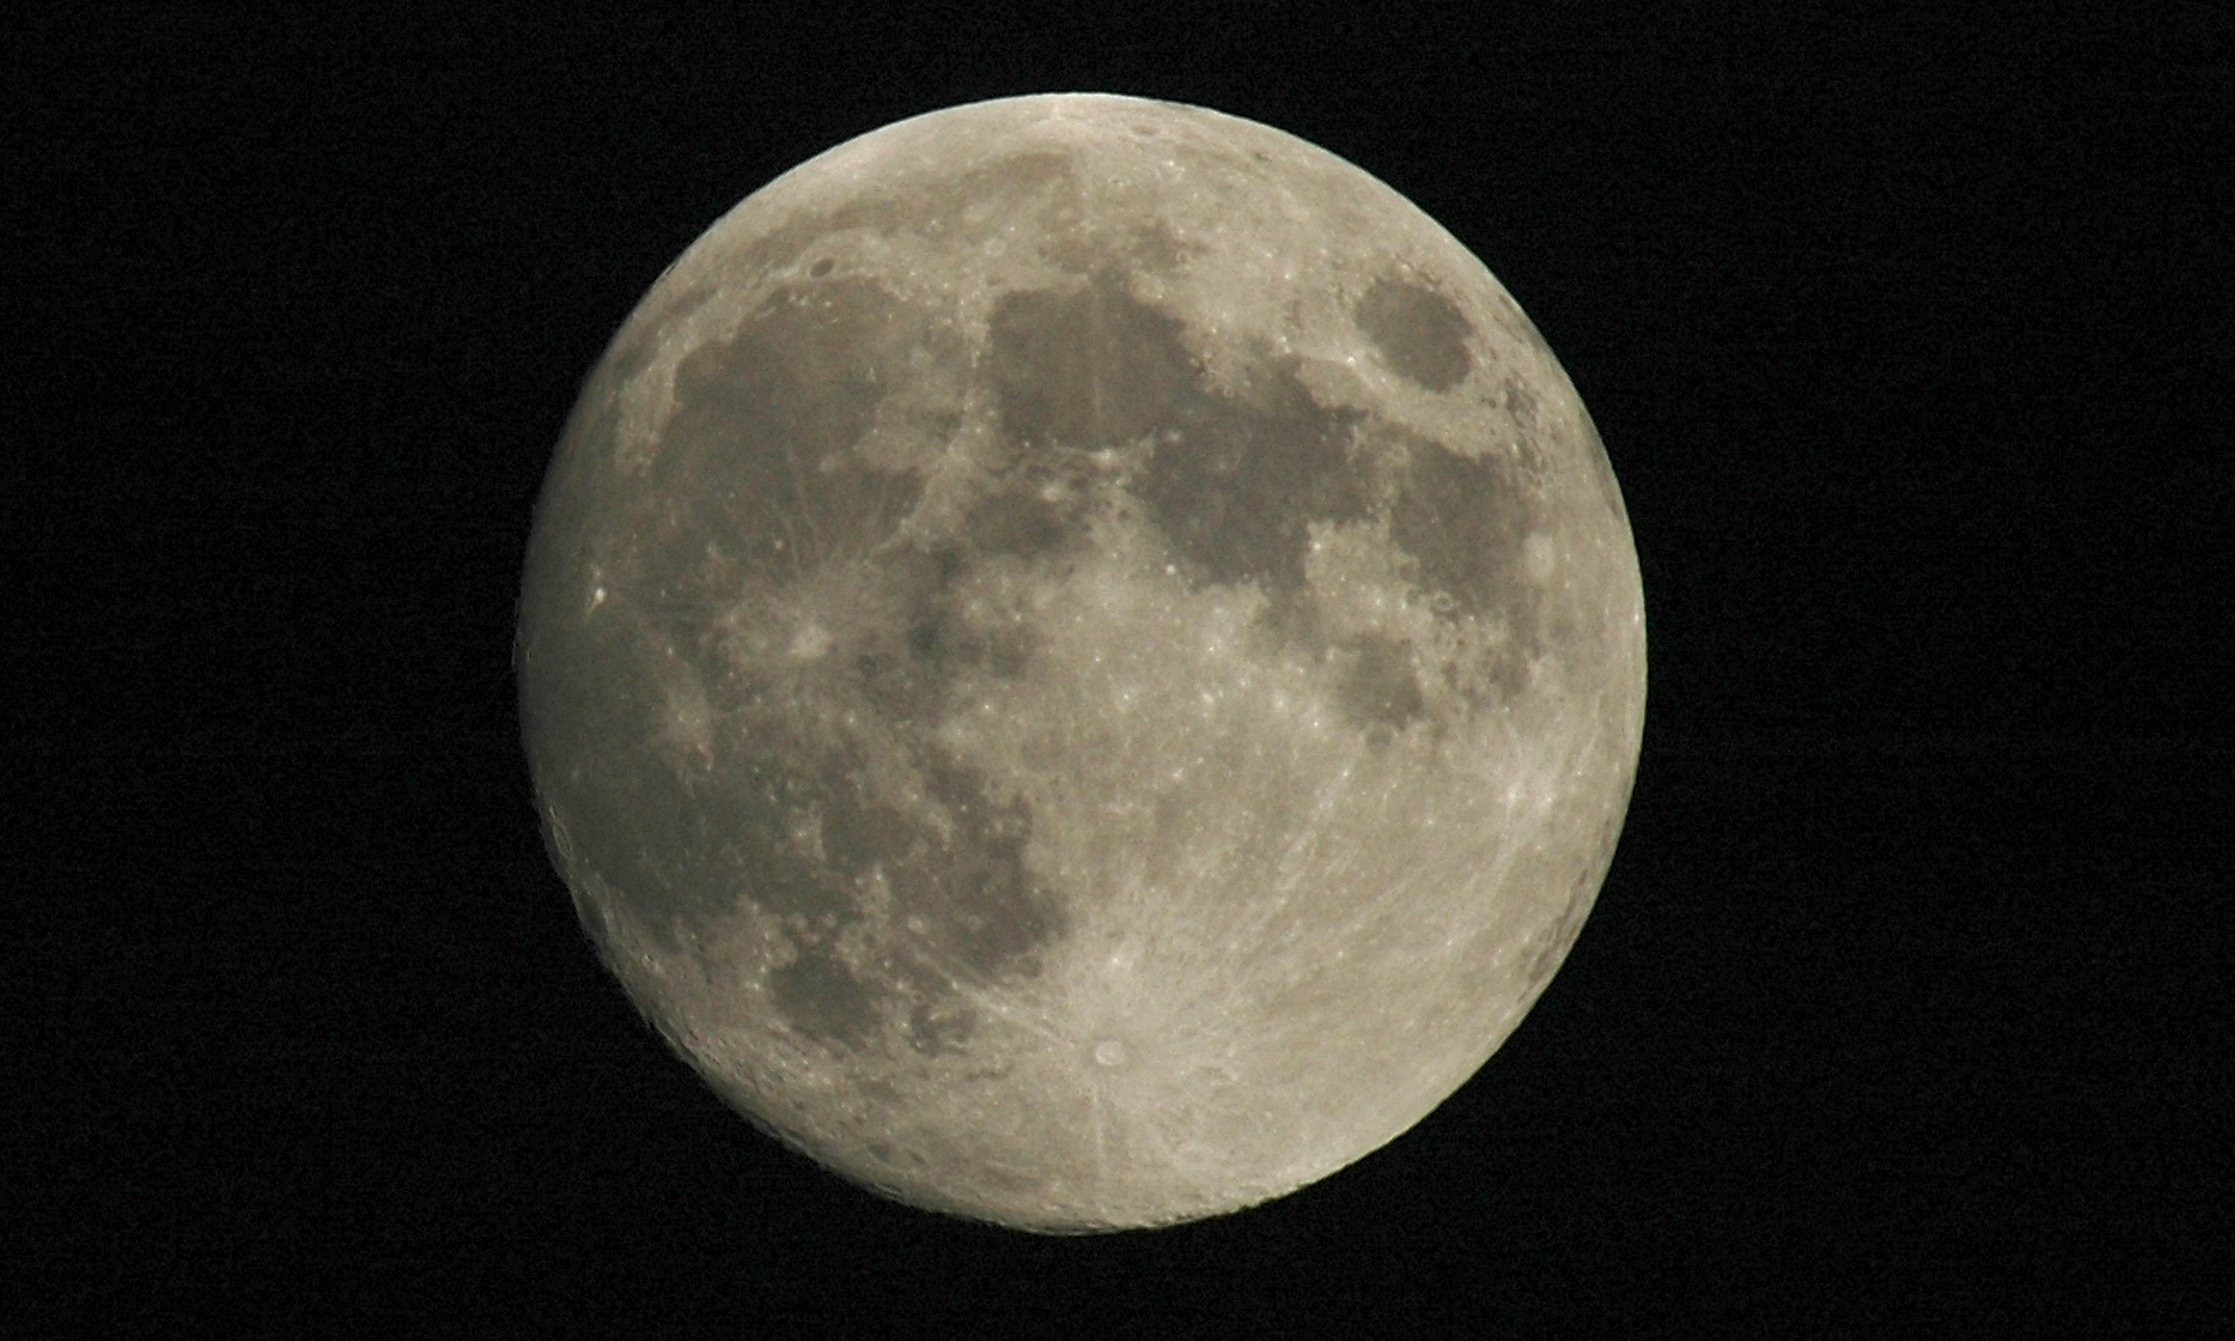 Full moon shot showing details of the moon's surface